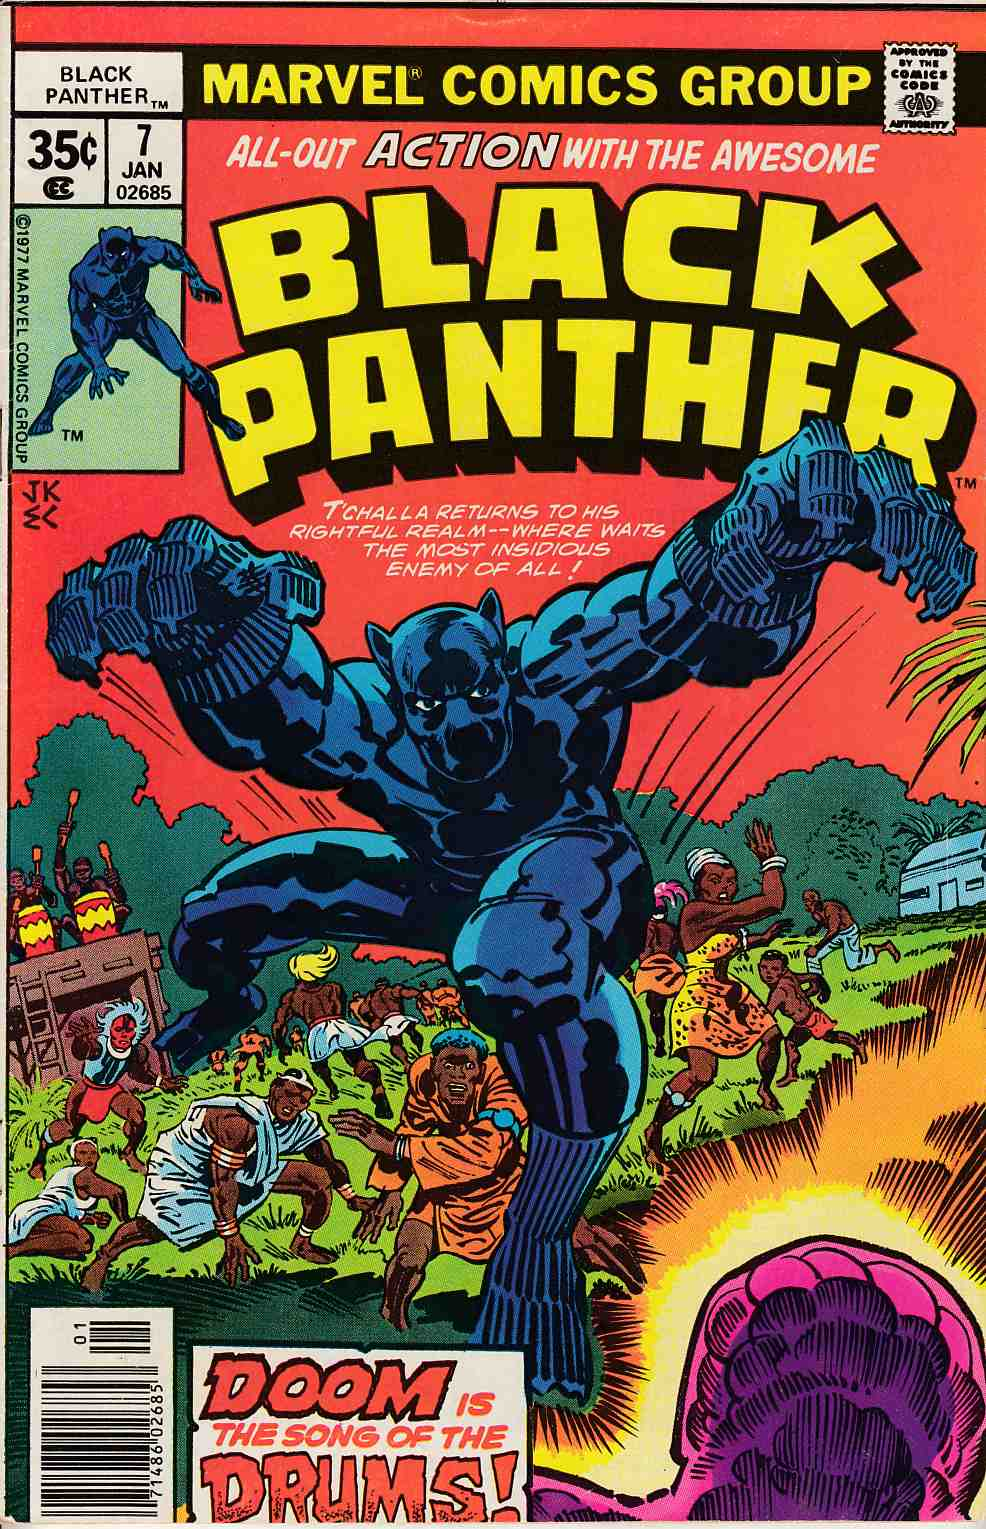 Black Panther #7 Fine/Very Fine (7.0) [Marvel Comic] THUMBNAIL